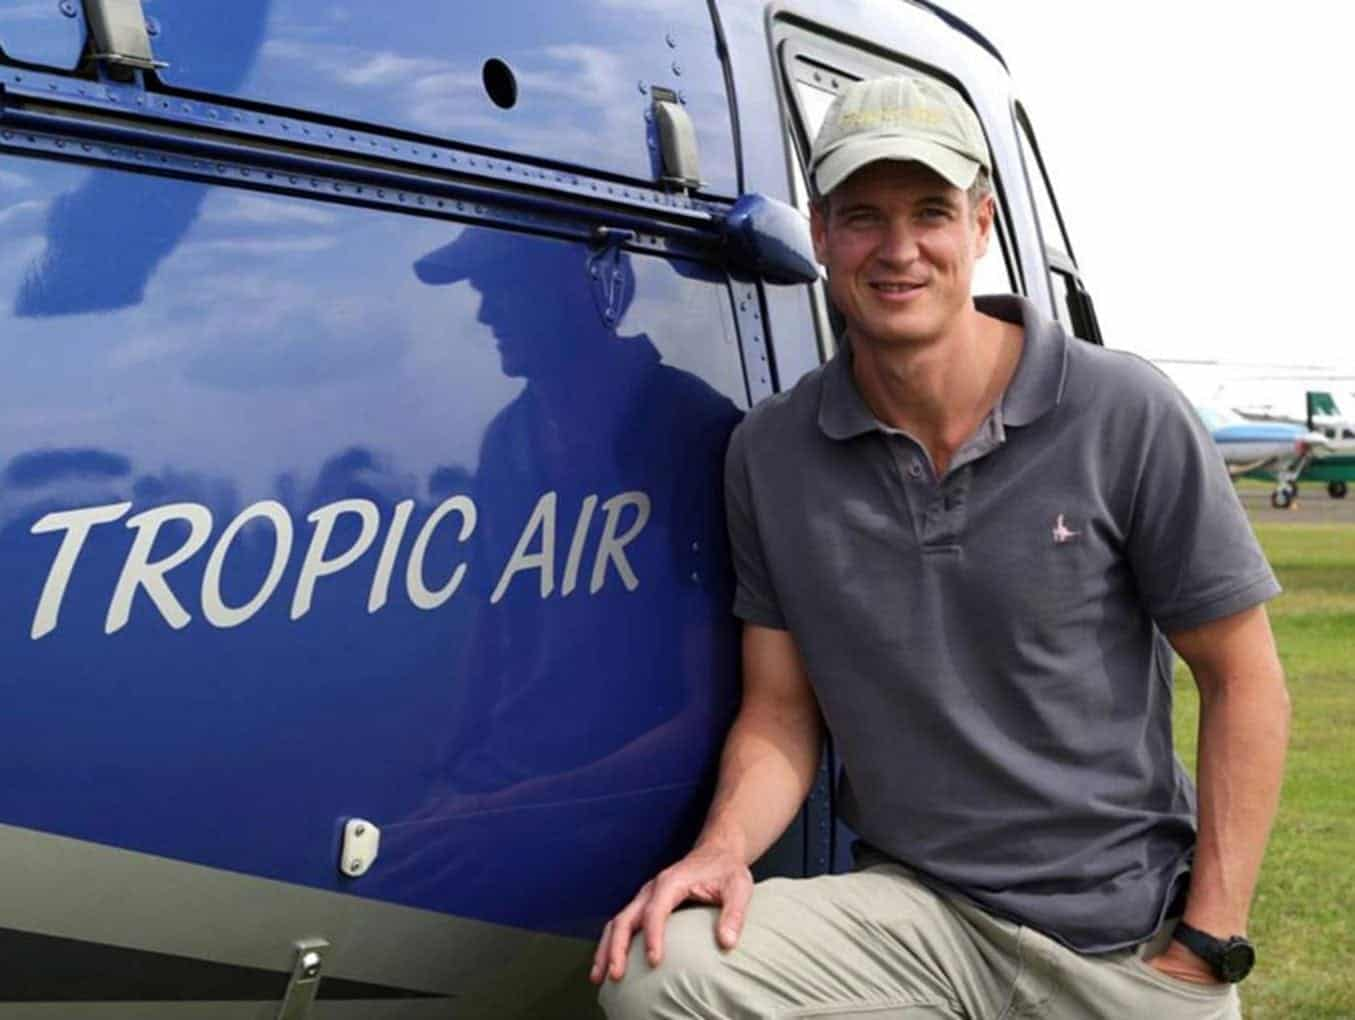 British Pilot's Murder Highlights Anti-Poaching Issues In Africa